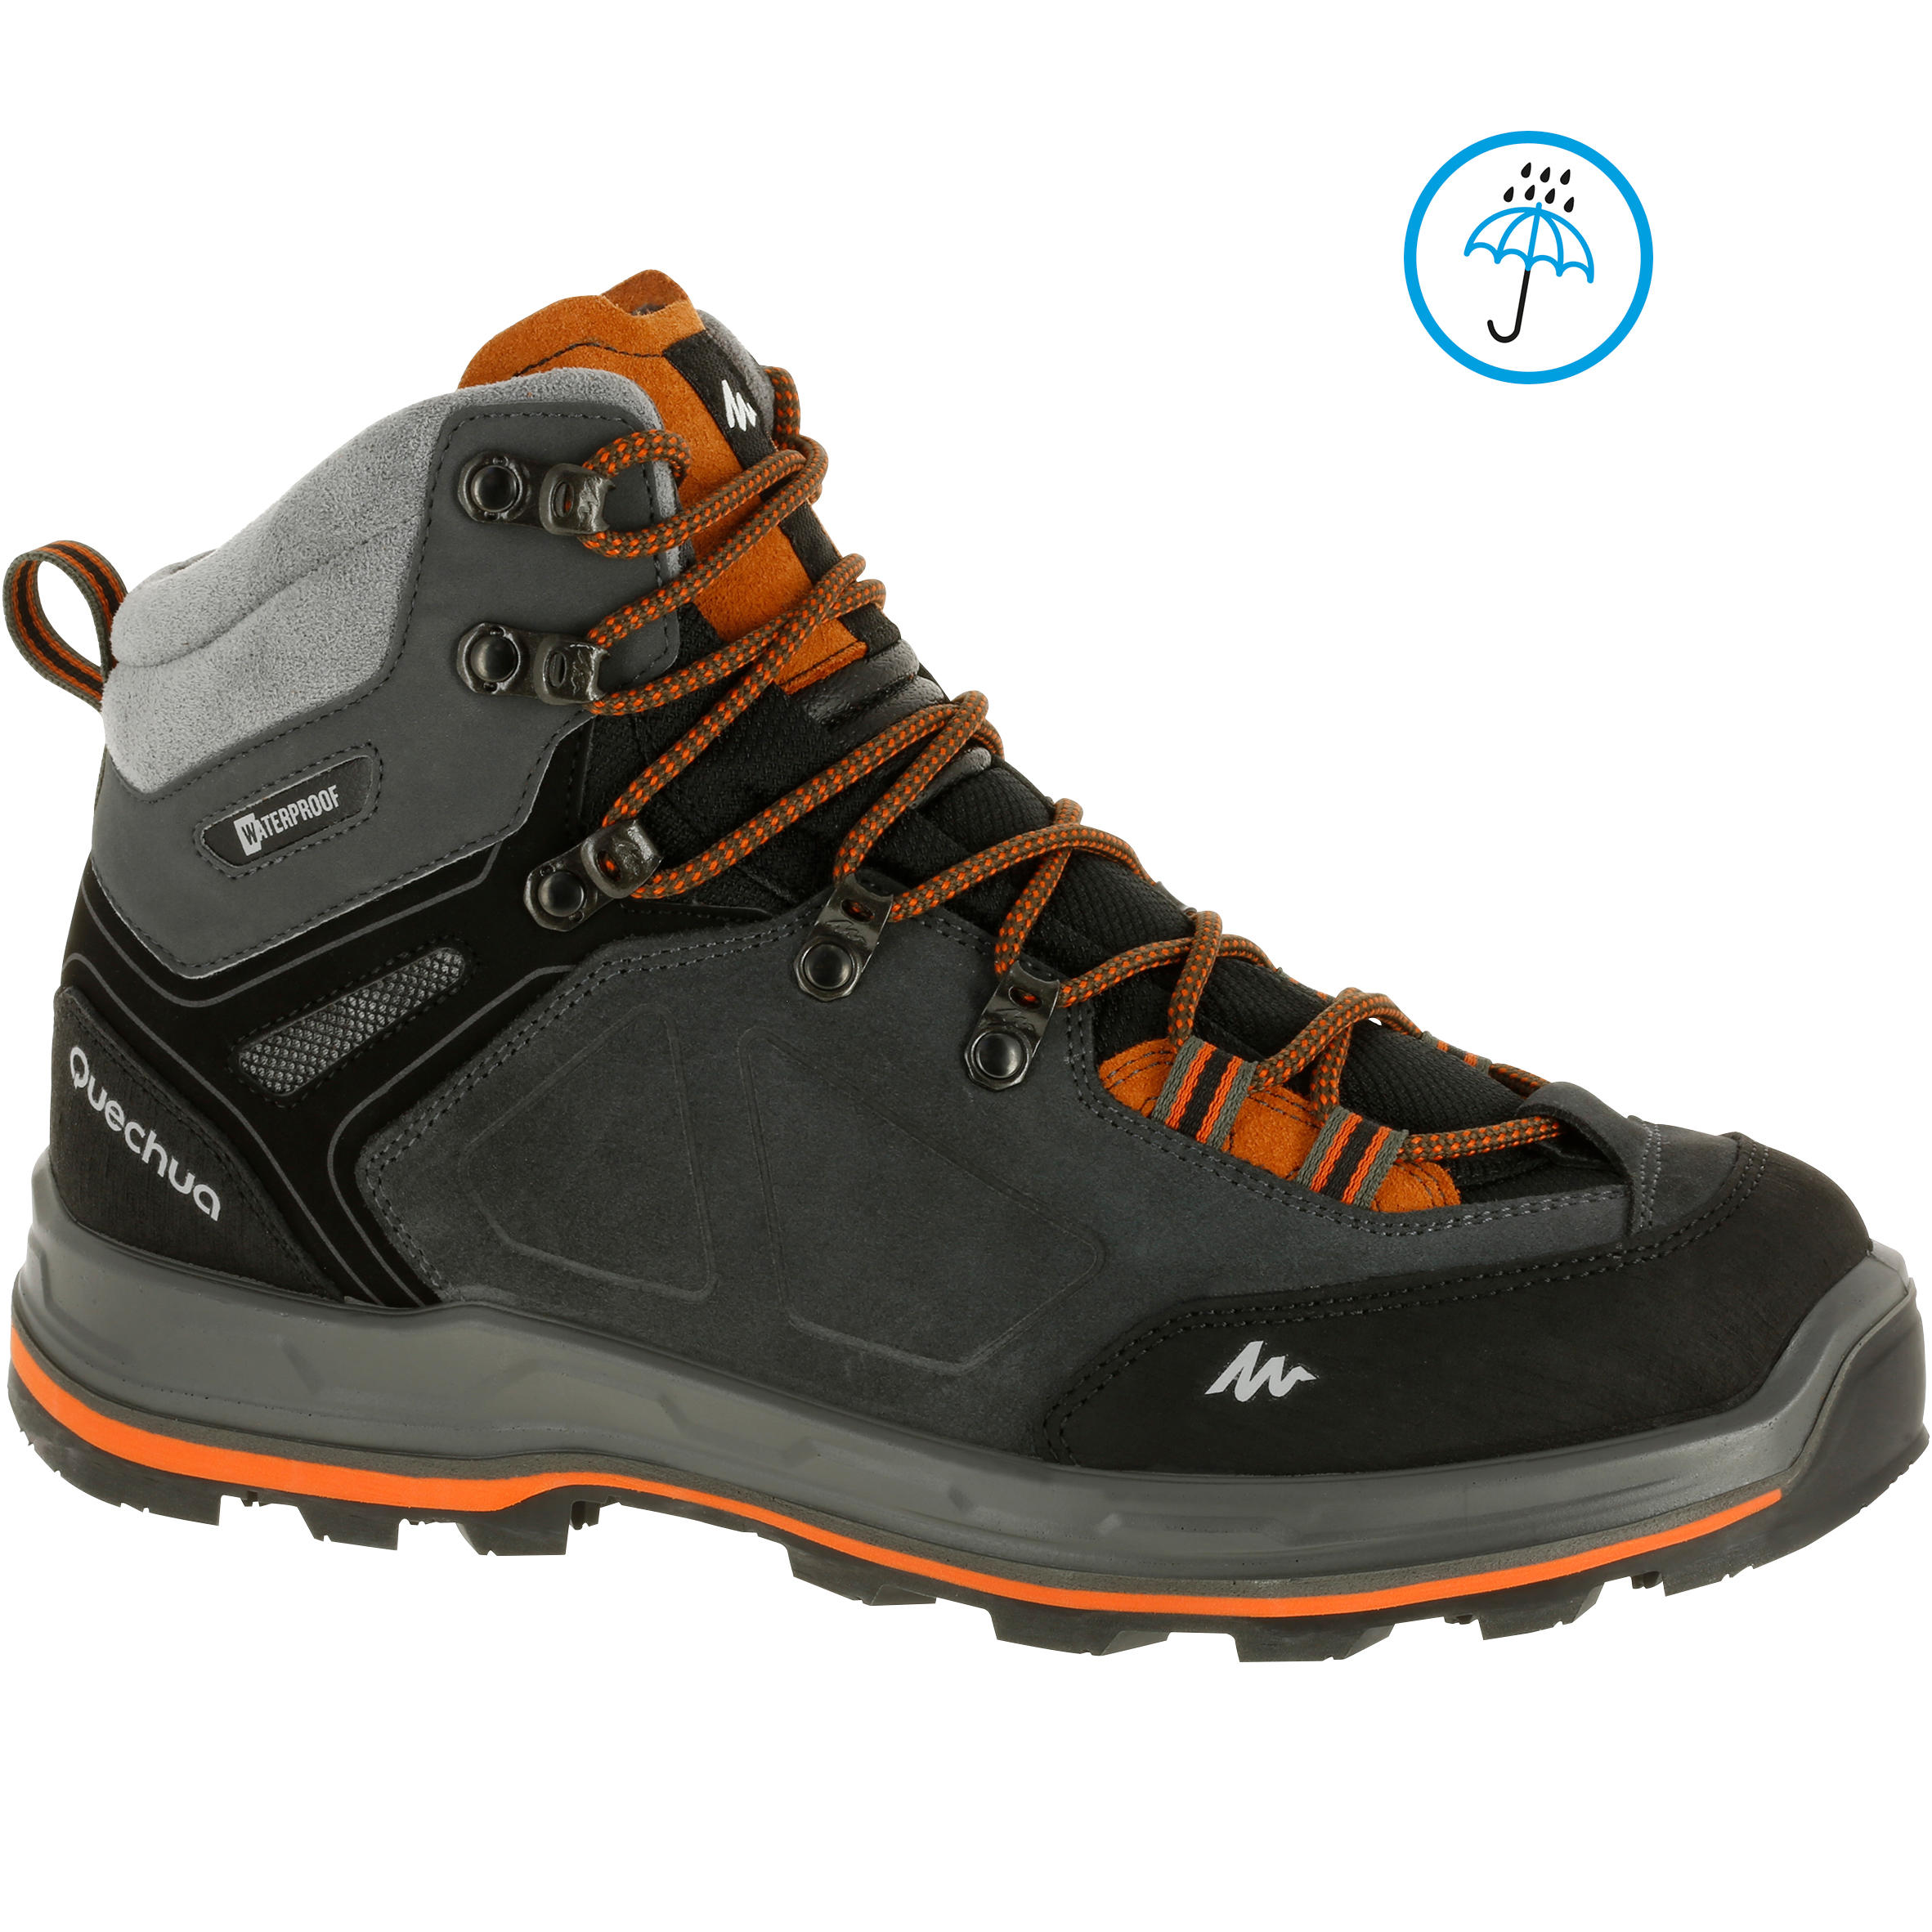 Trek100 Men\u0027s Mountain Trekking Boots